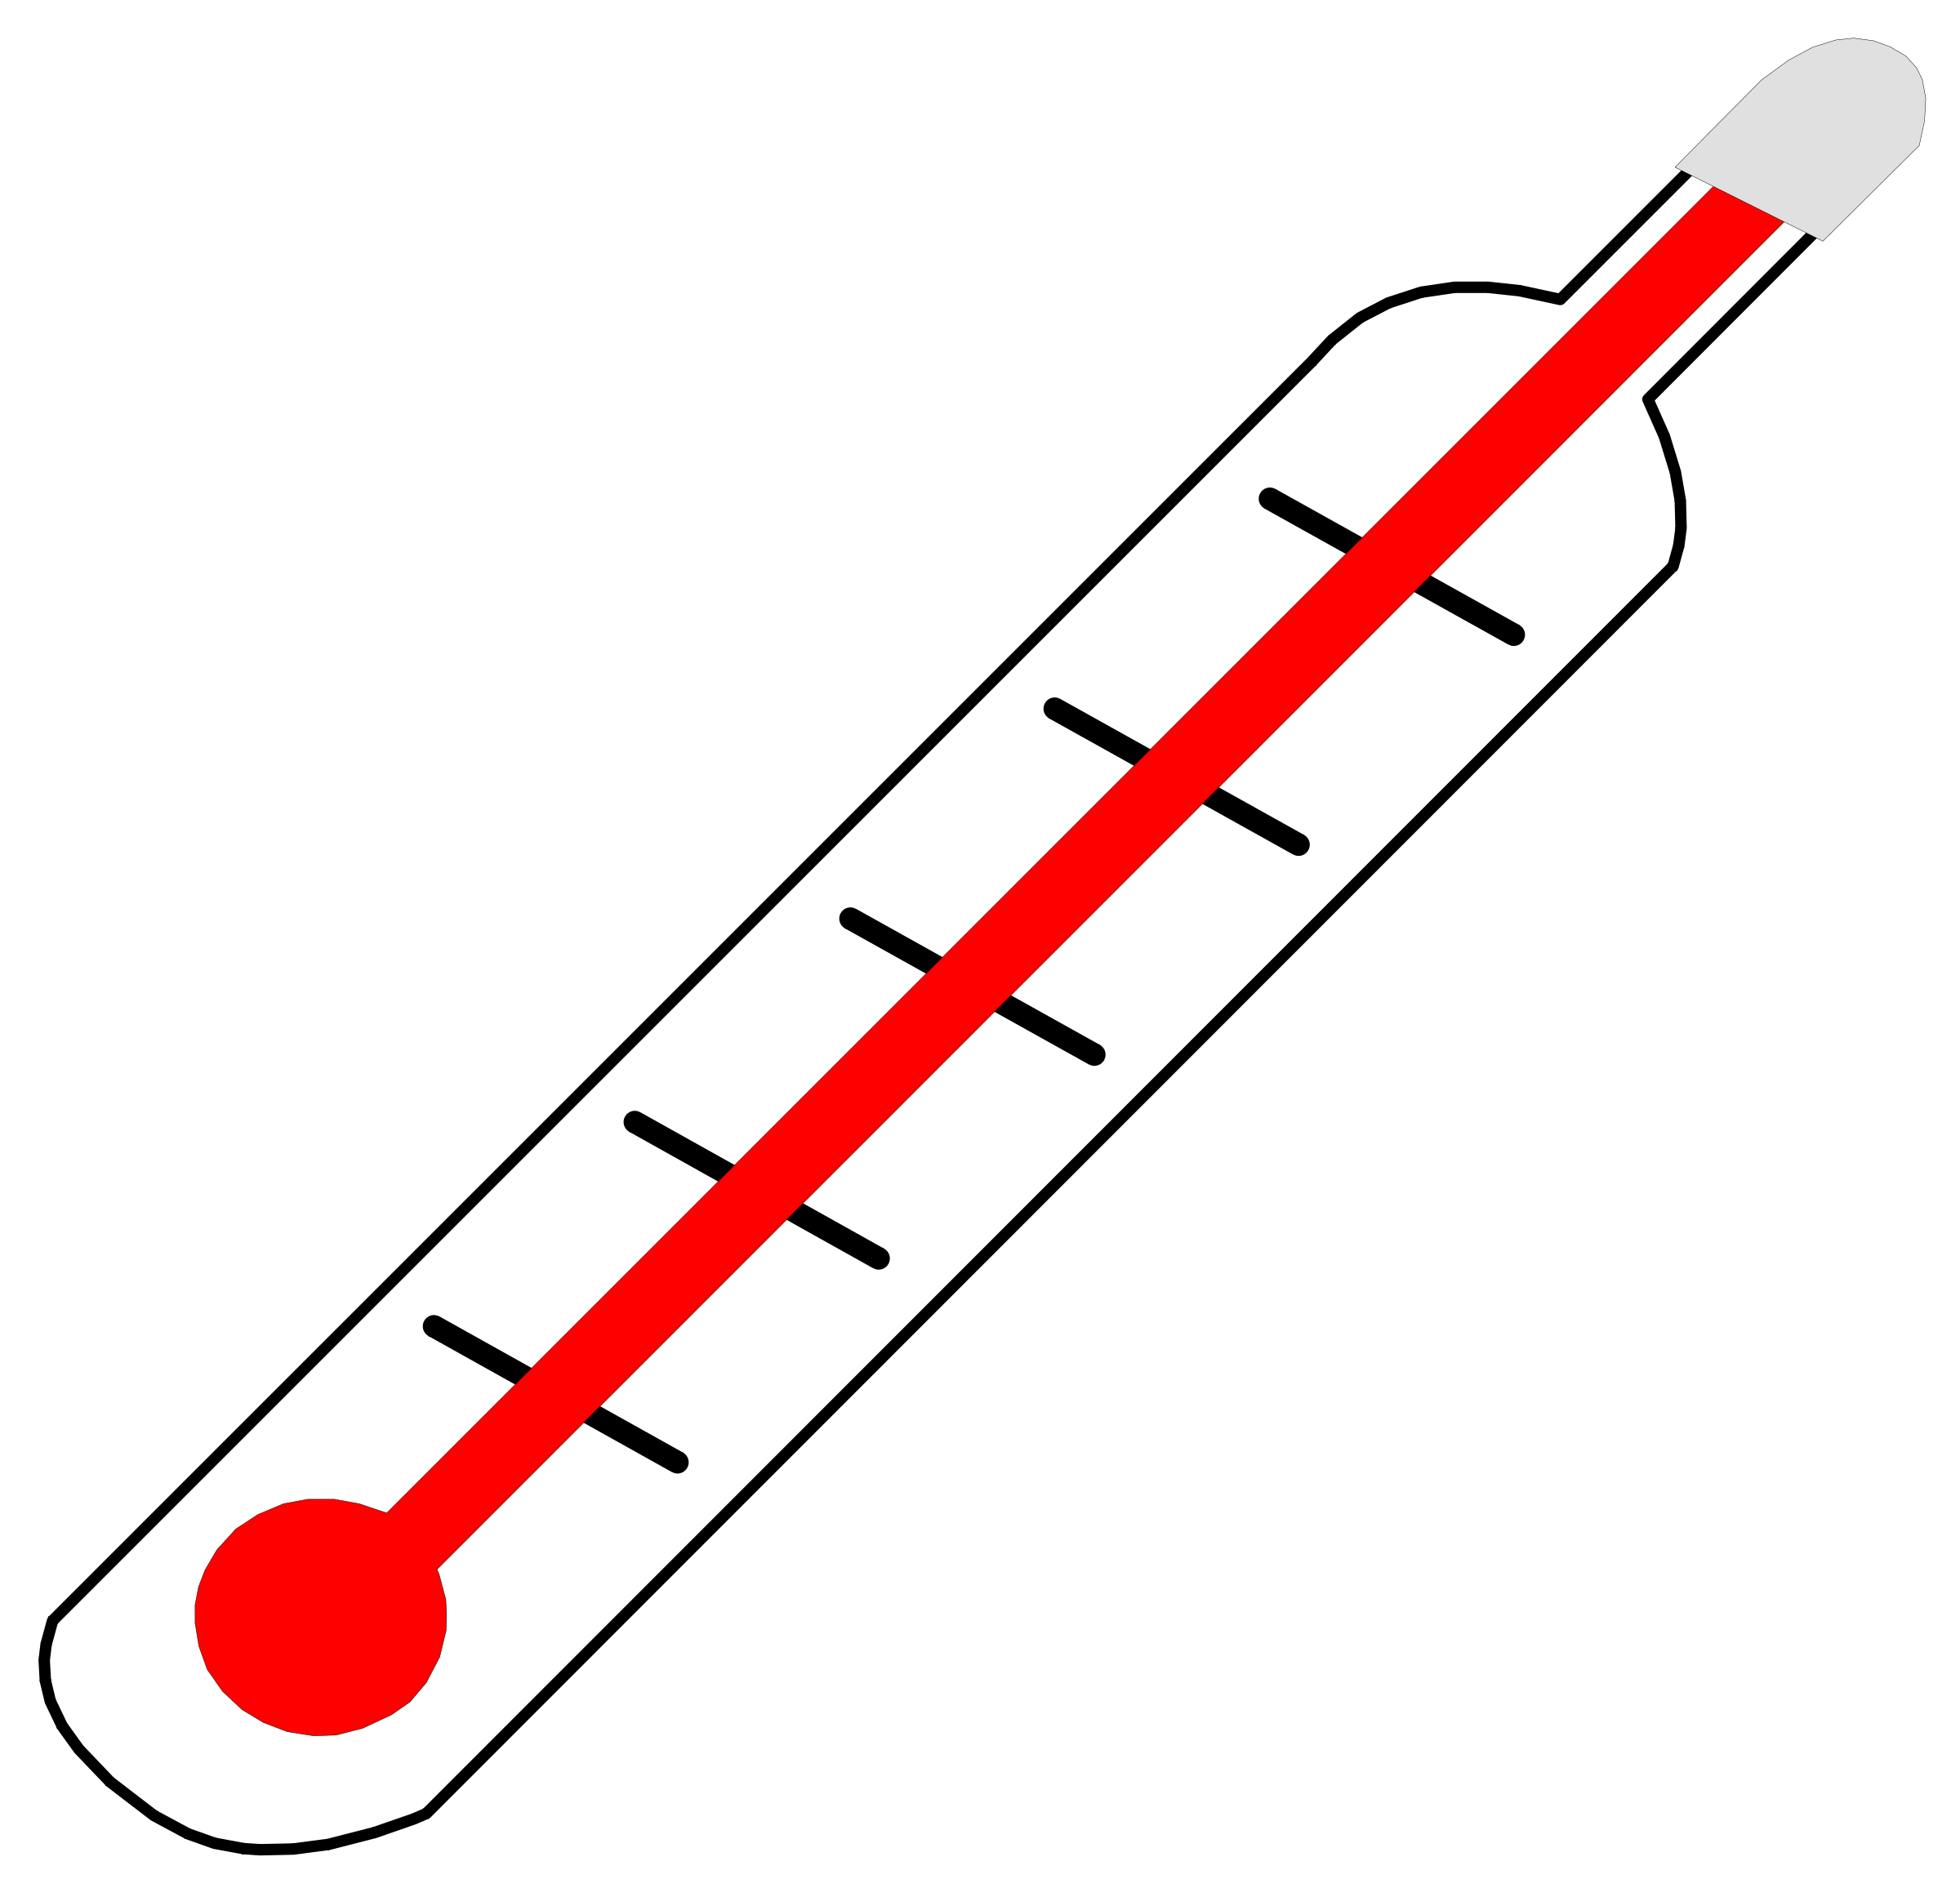 Transparent thermometer background. Free freezing cliparts download